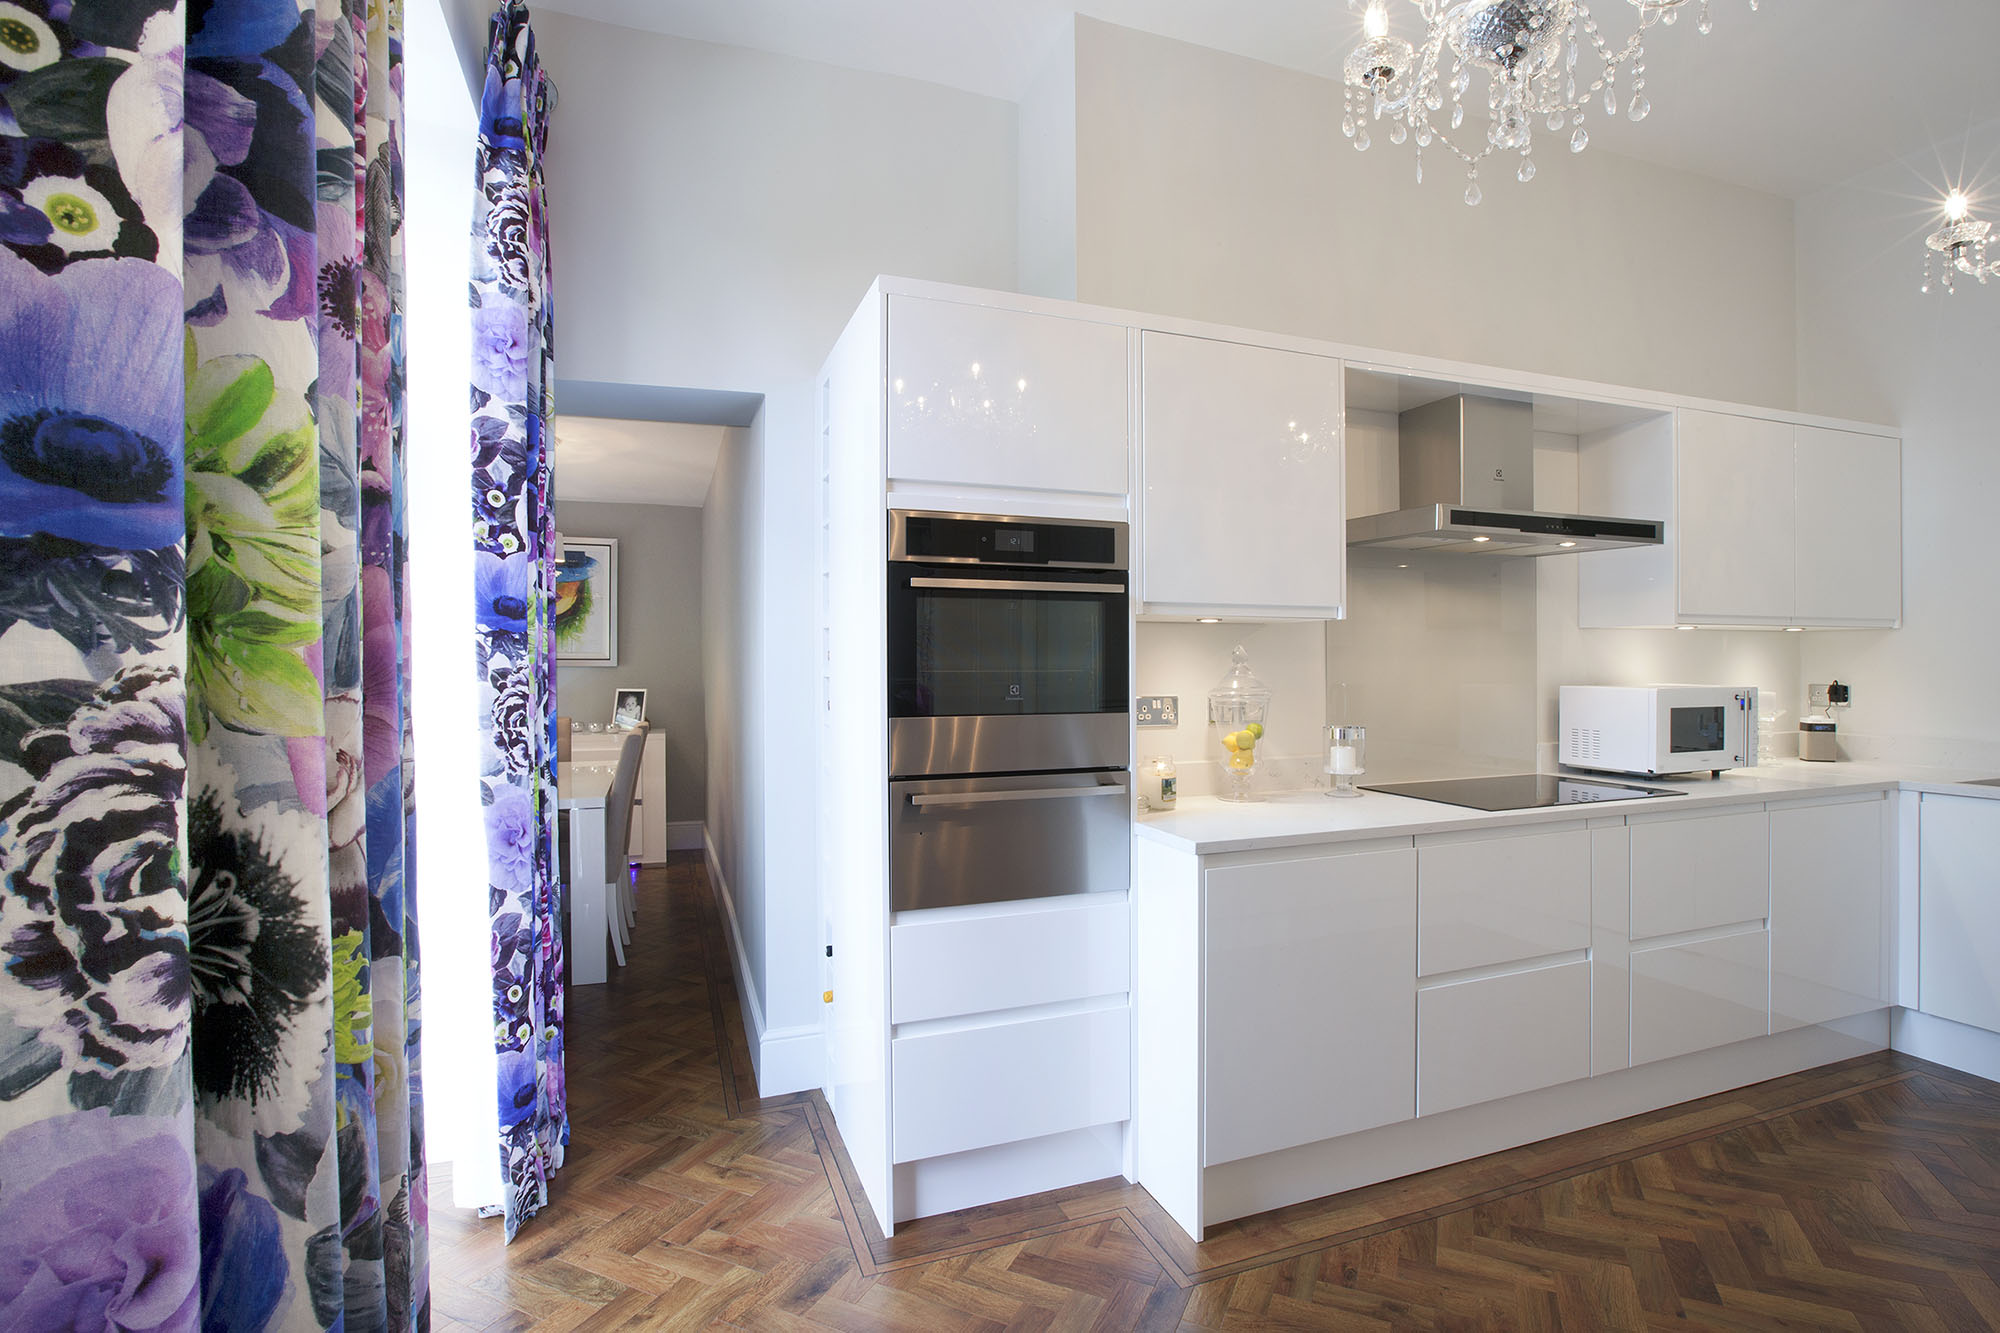 Contemporary white kitchen with wood floor and full length multicoloured curtains.